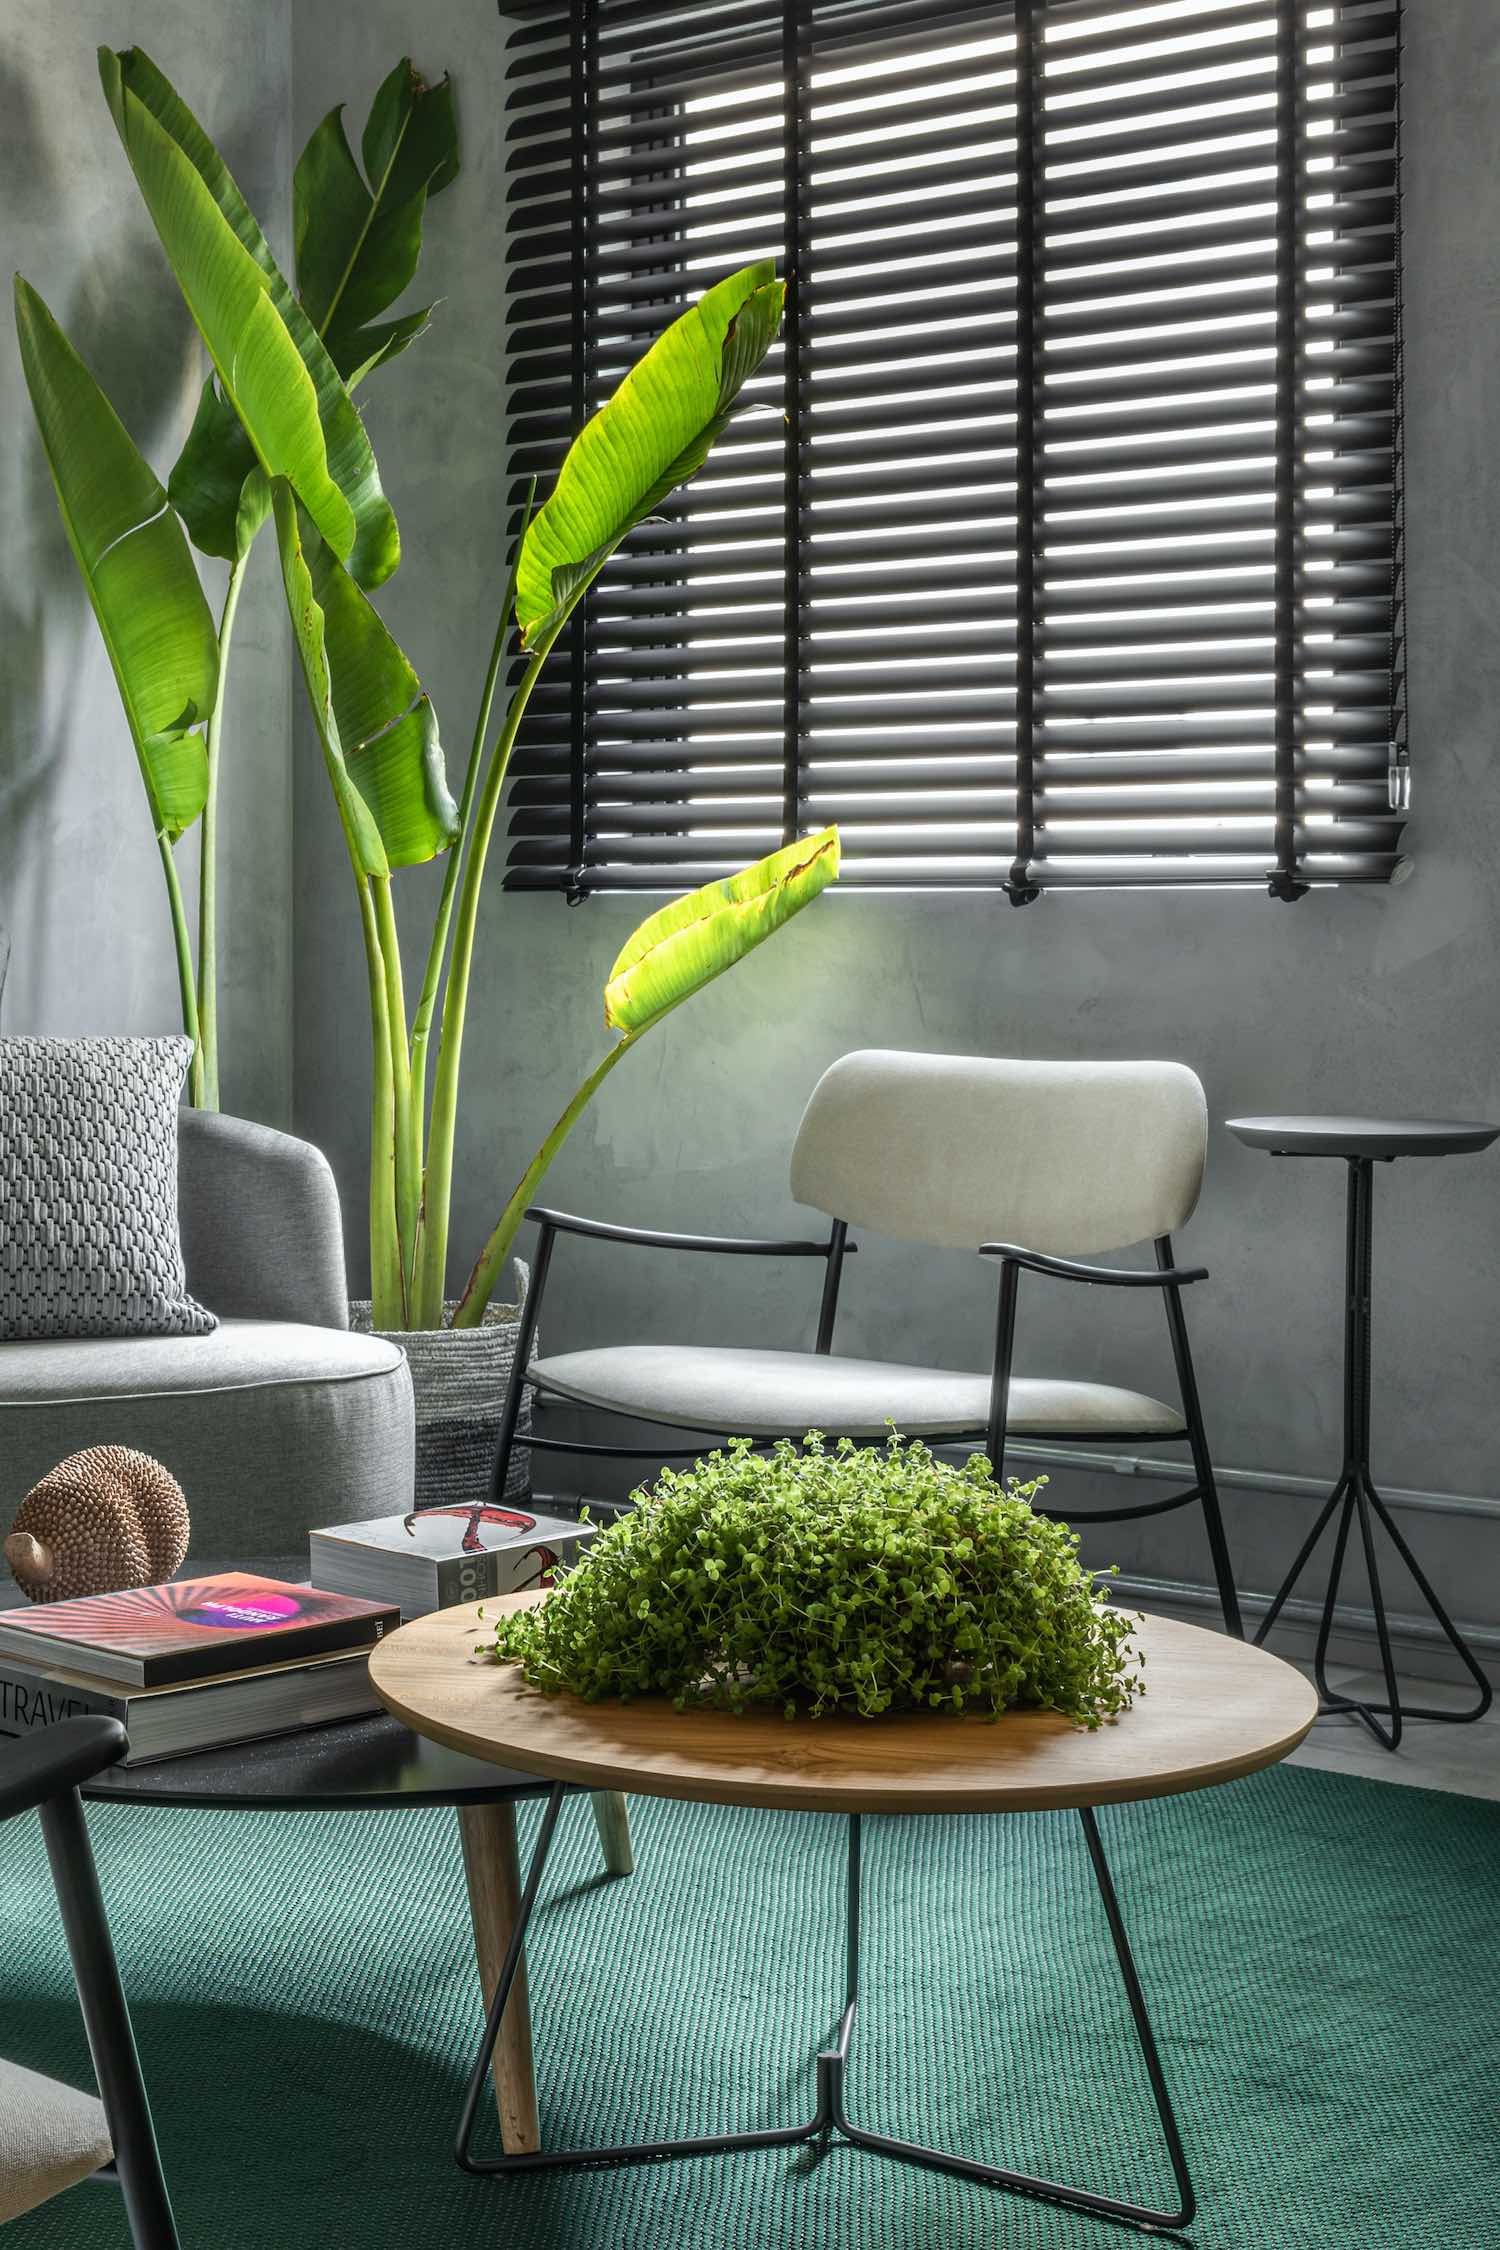 green plant on above circular wooden table